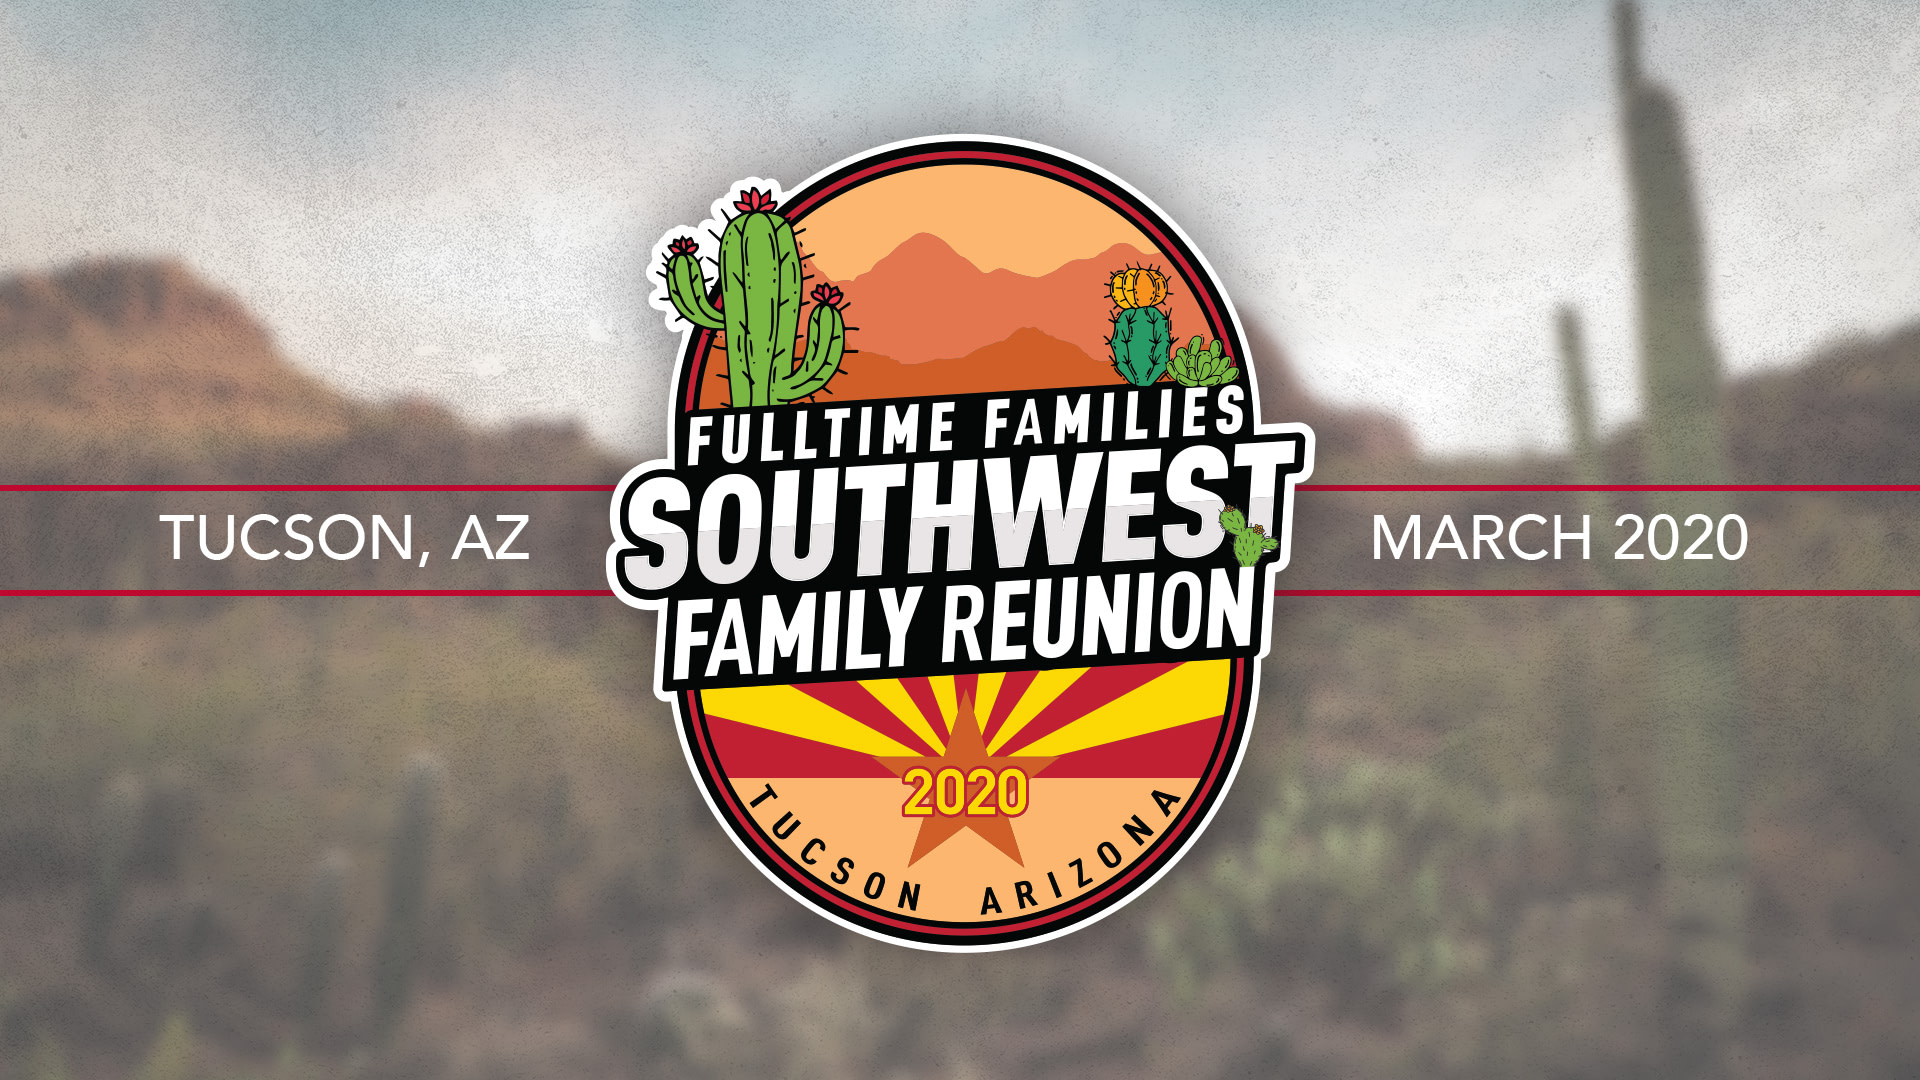 2020 Southwest Family Reunion Rally - Fulltime Families